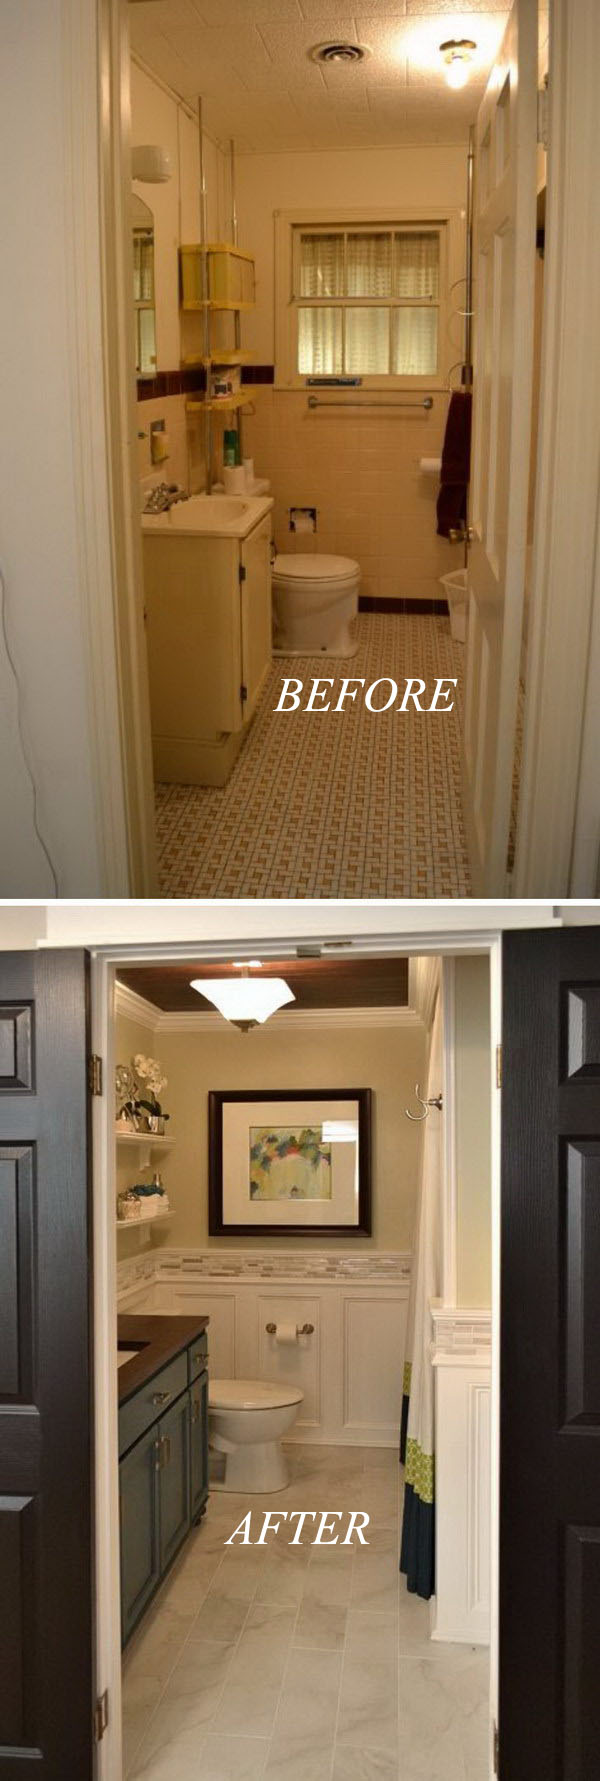 33 Inspirational Small Bathroom Remodel Before And After Diy Design Decor